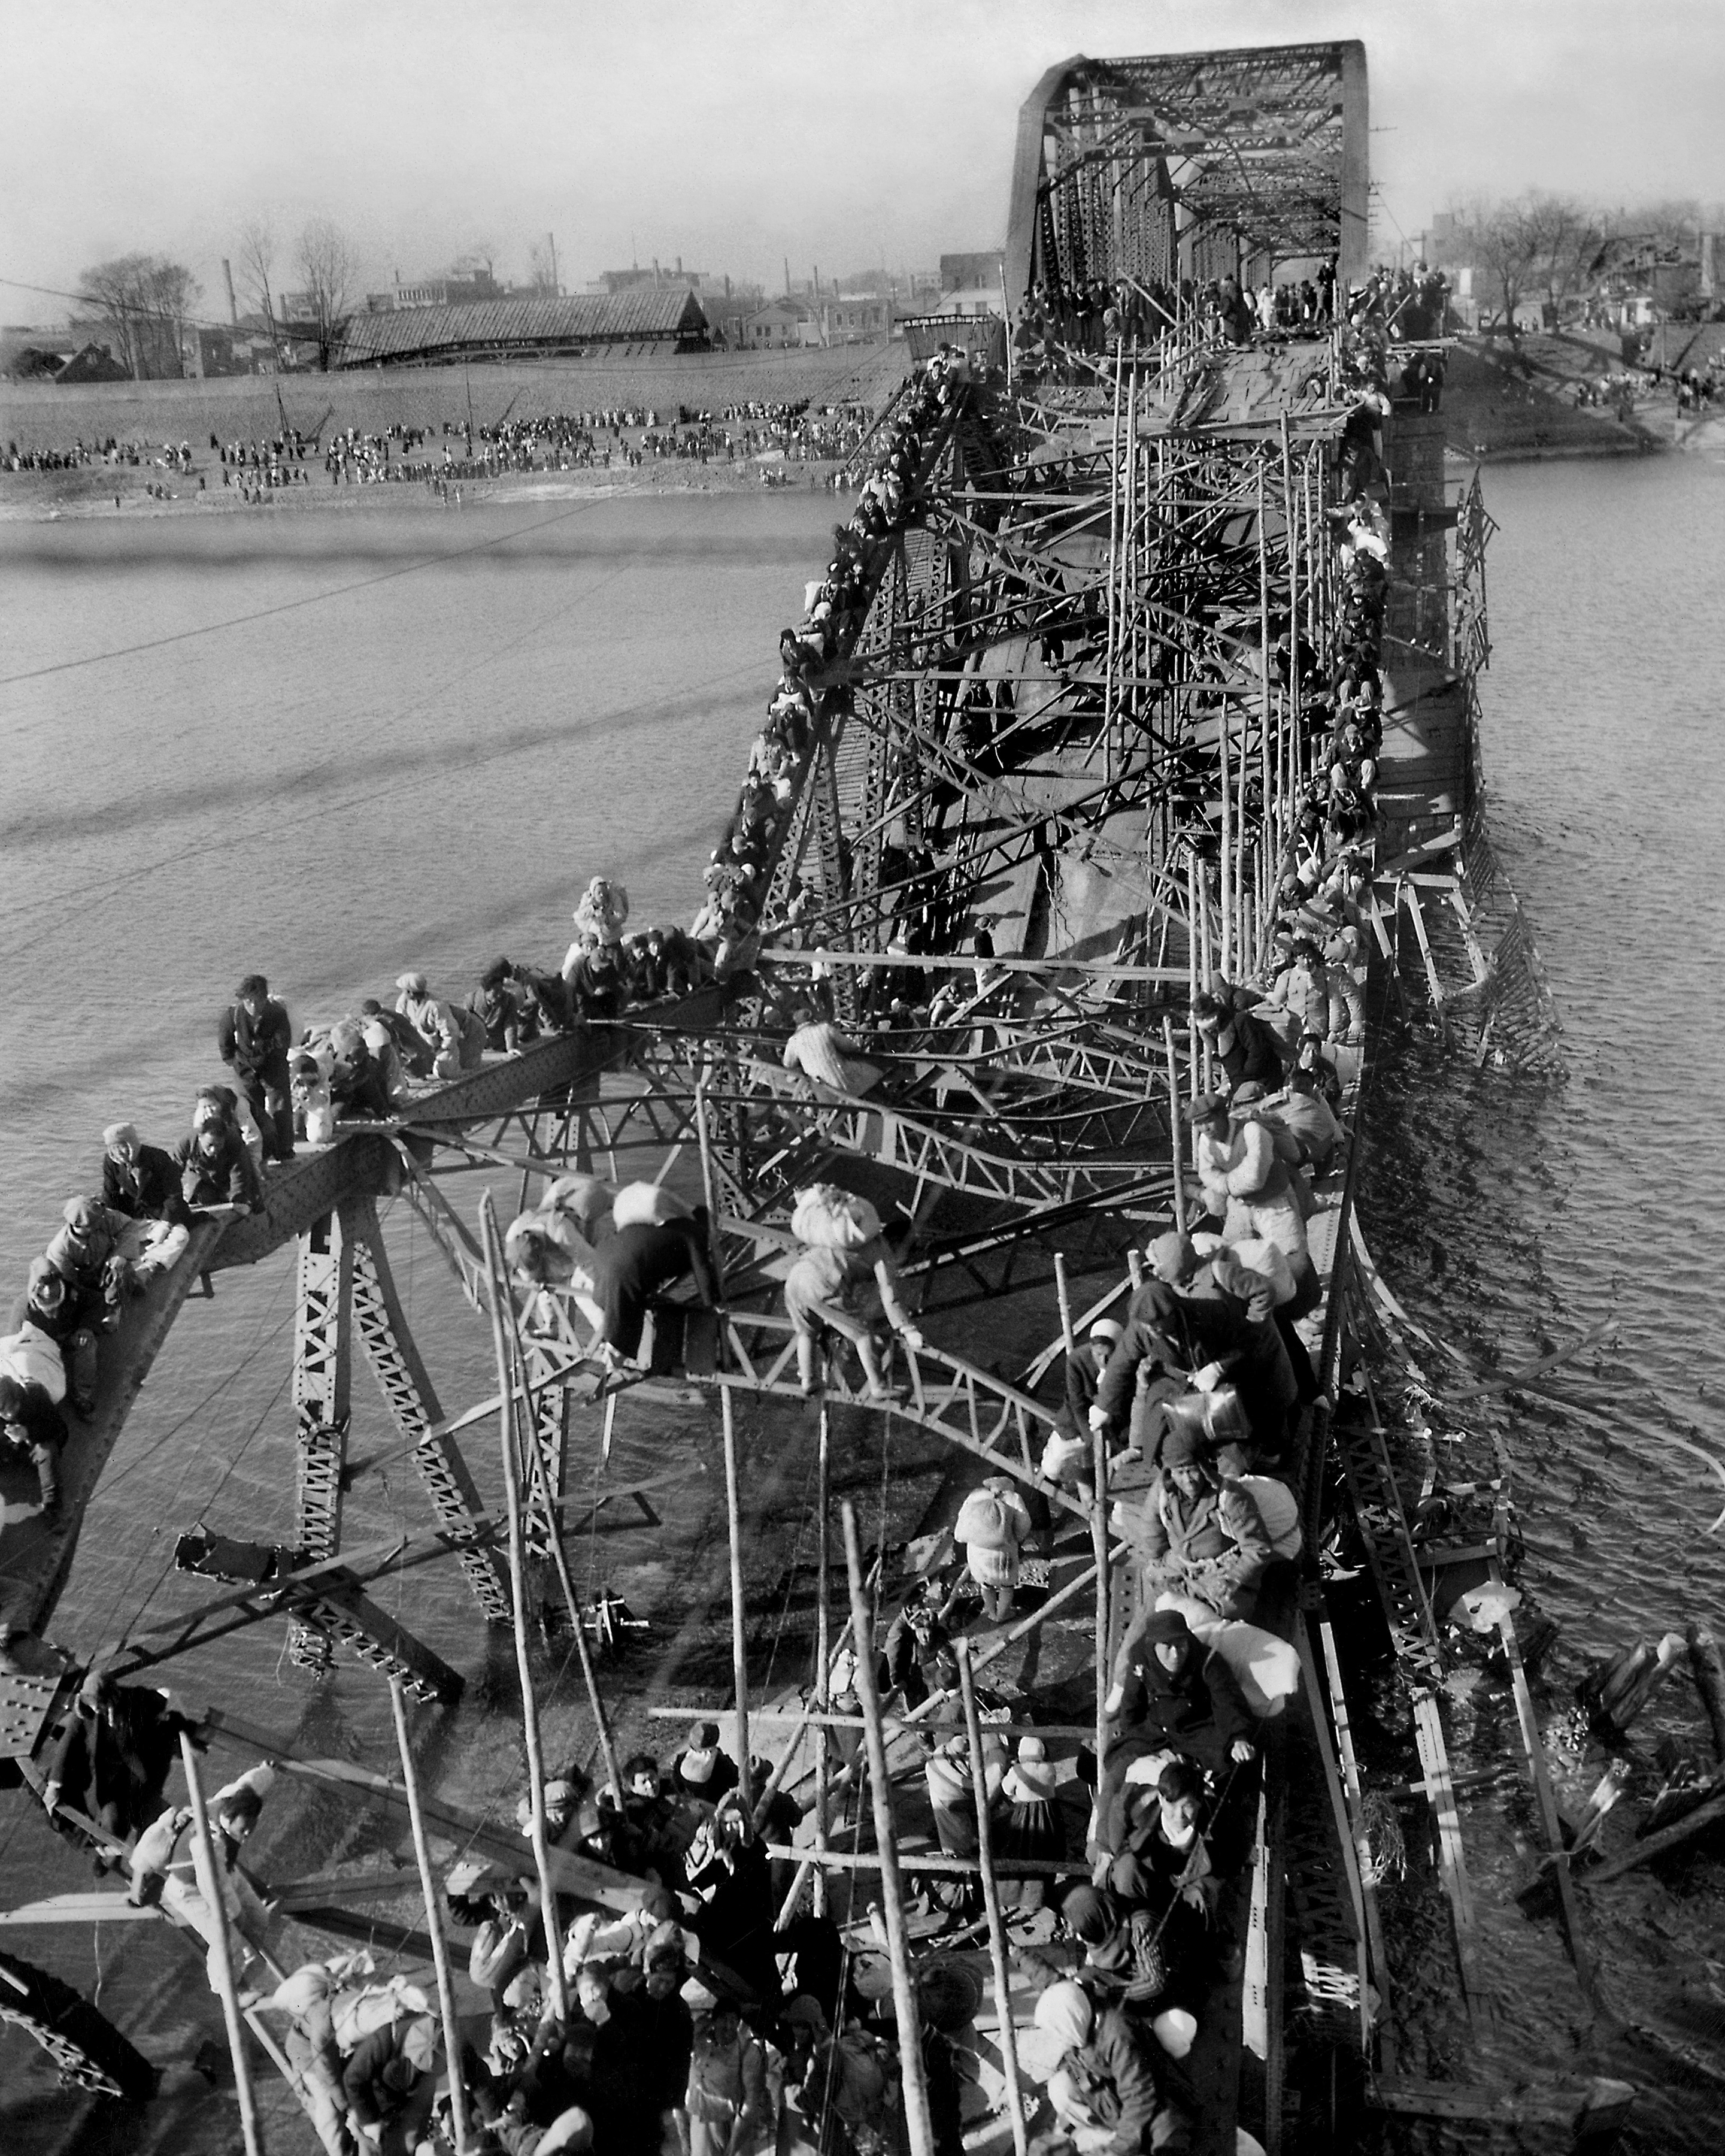 In bitter cold, residents from Pyongyang, North Korea, and refugees of other areas crawl over precarious, tangled girders of a bridge across the Taedong River on Dec. 4, 1950, as they flee south ahead of advancing Chinese Communist troops fighting on the side of North Korea. (AP Photo/Max Desfor)